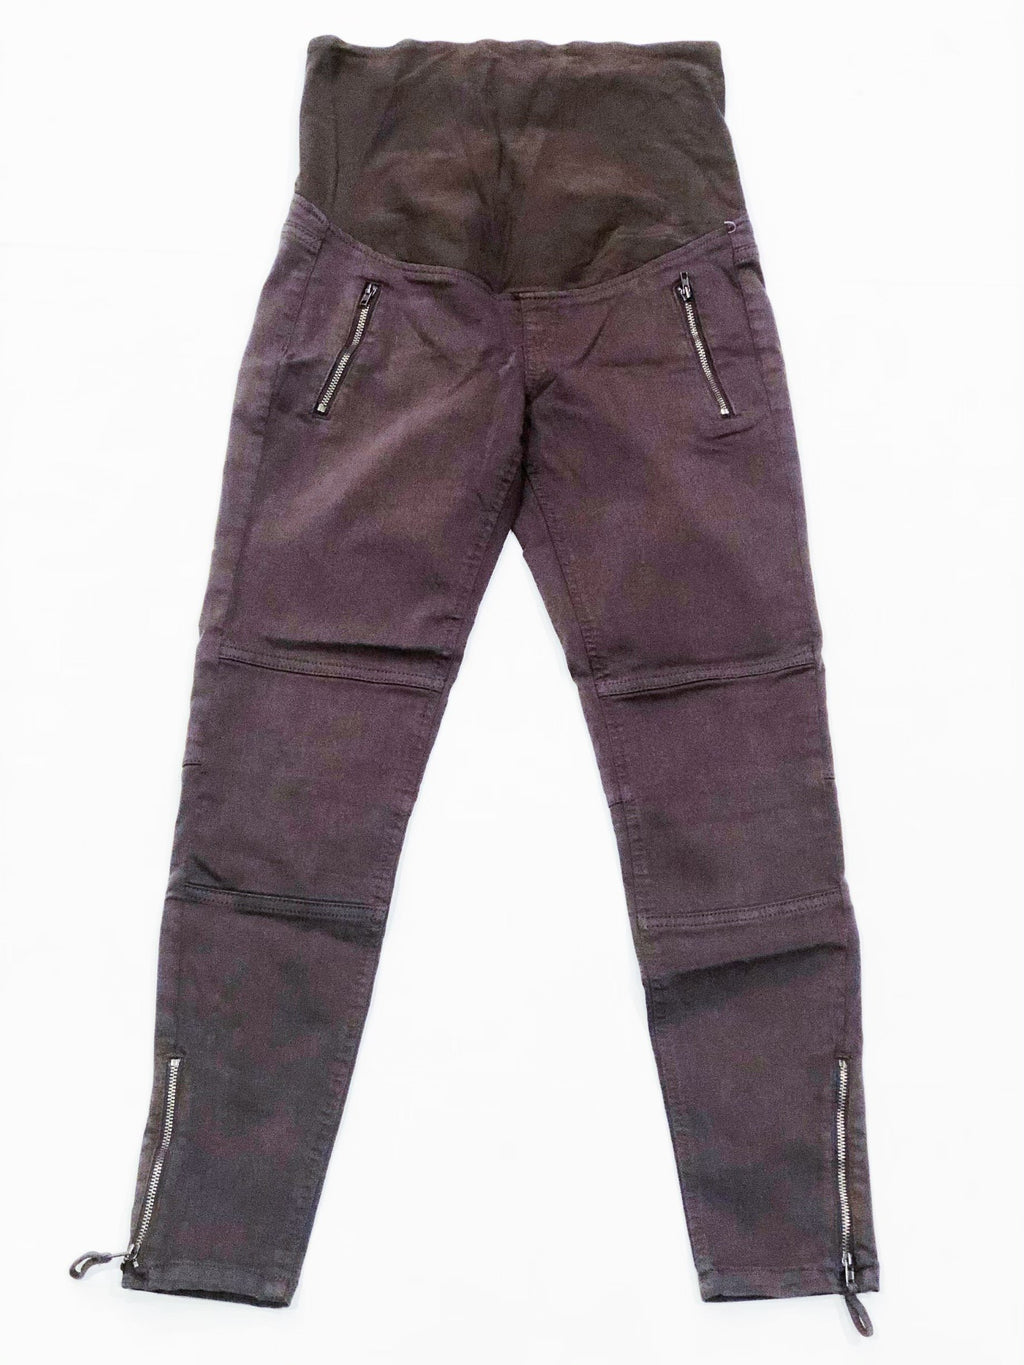 H&M Mama grey skinny jeans - size 6